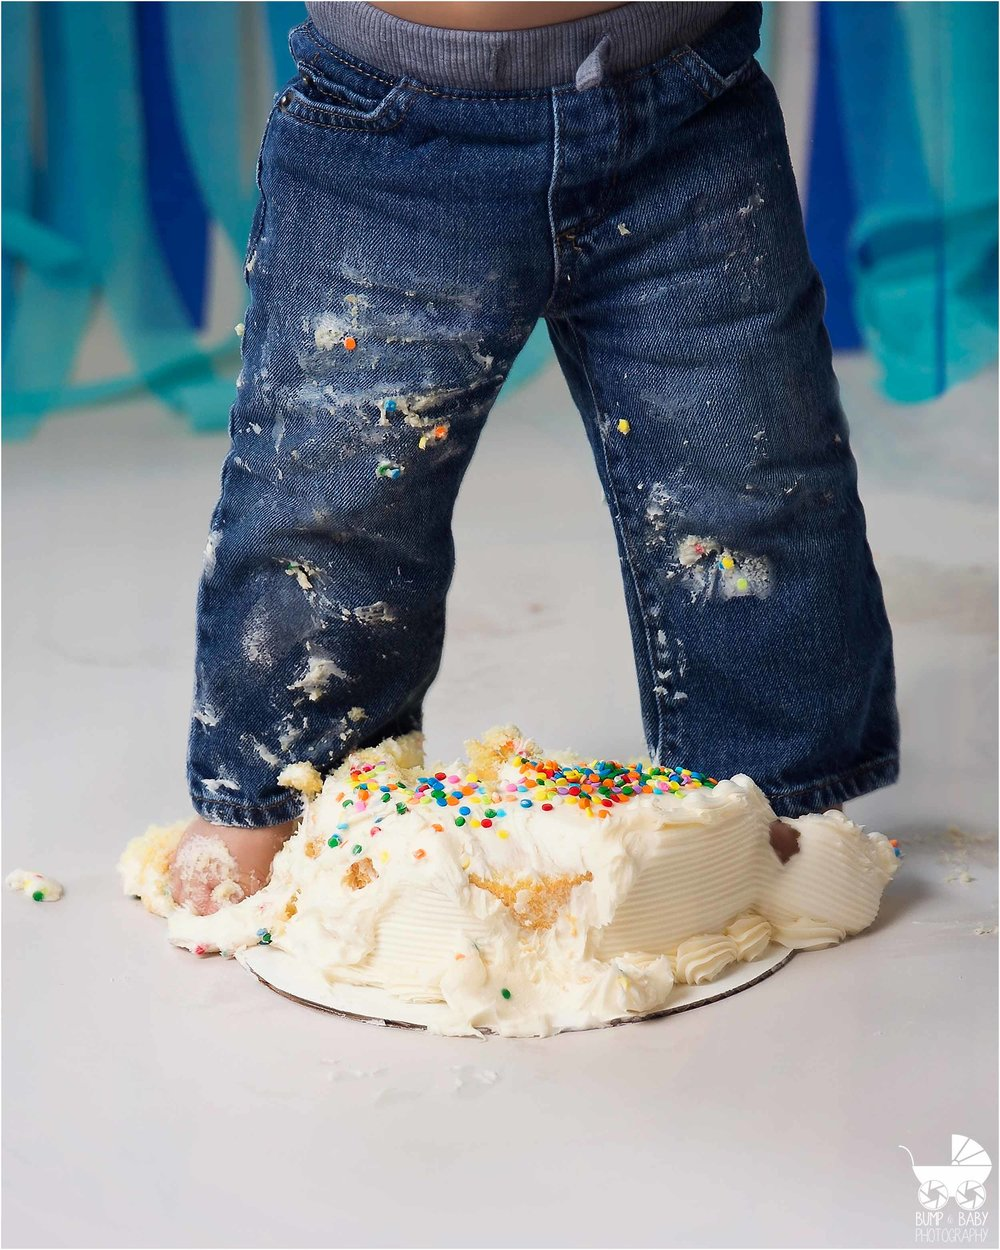 Cake_smash_session_baby_boy_Blue_themed_standing_in_cake.jpg